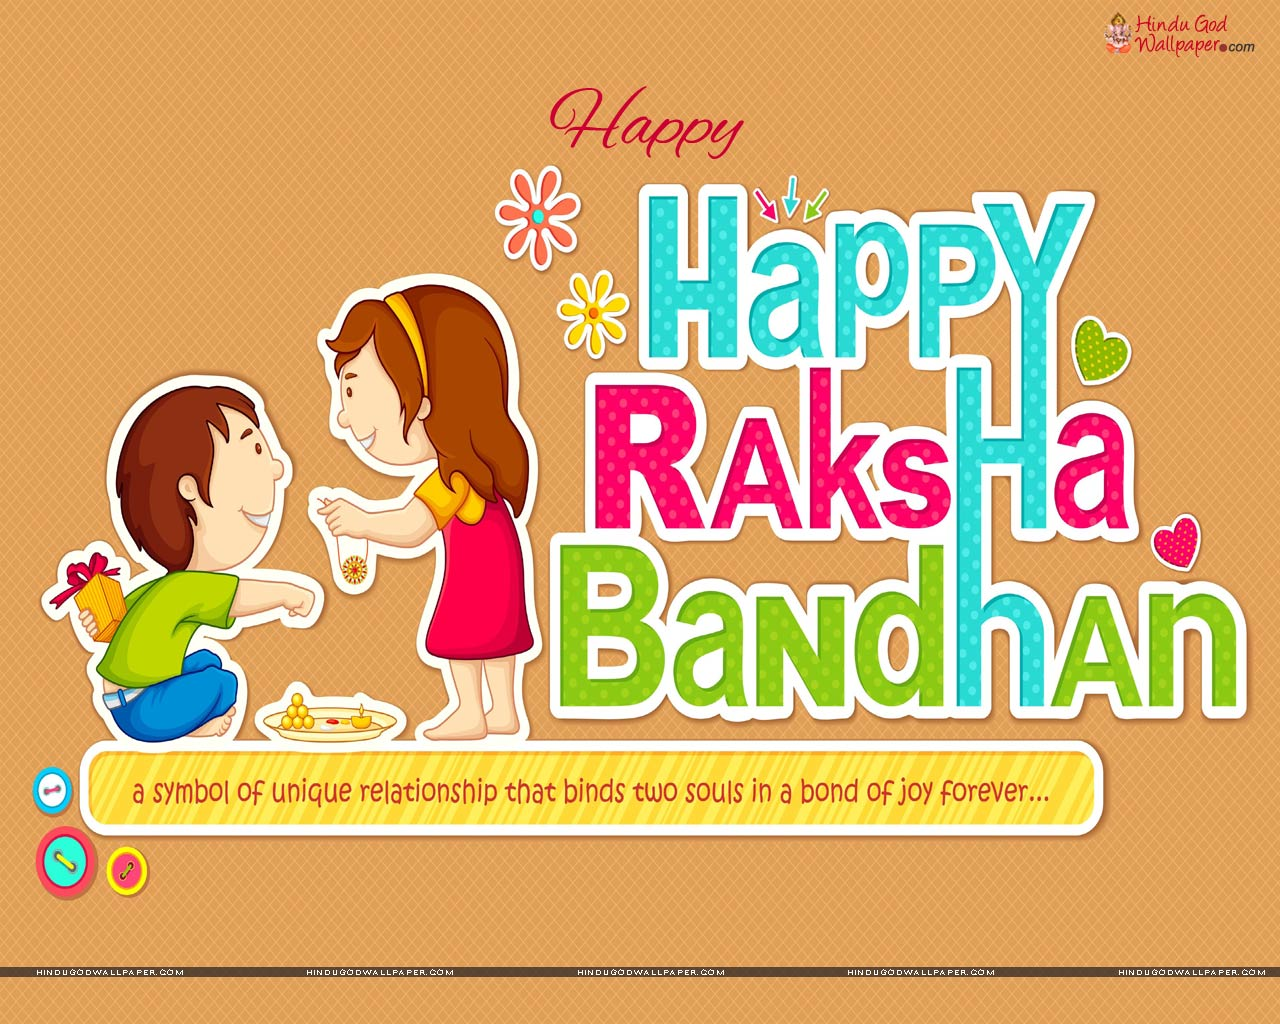 raksha bandhan - photo #22